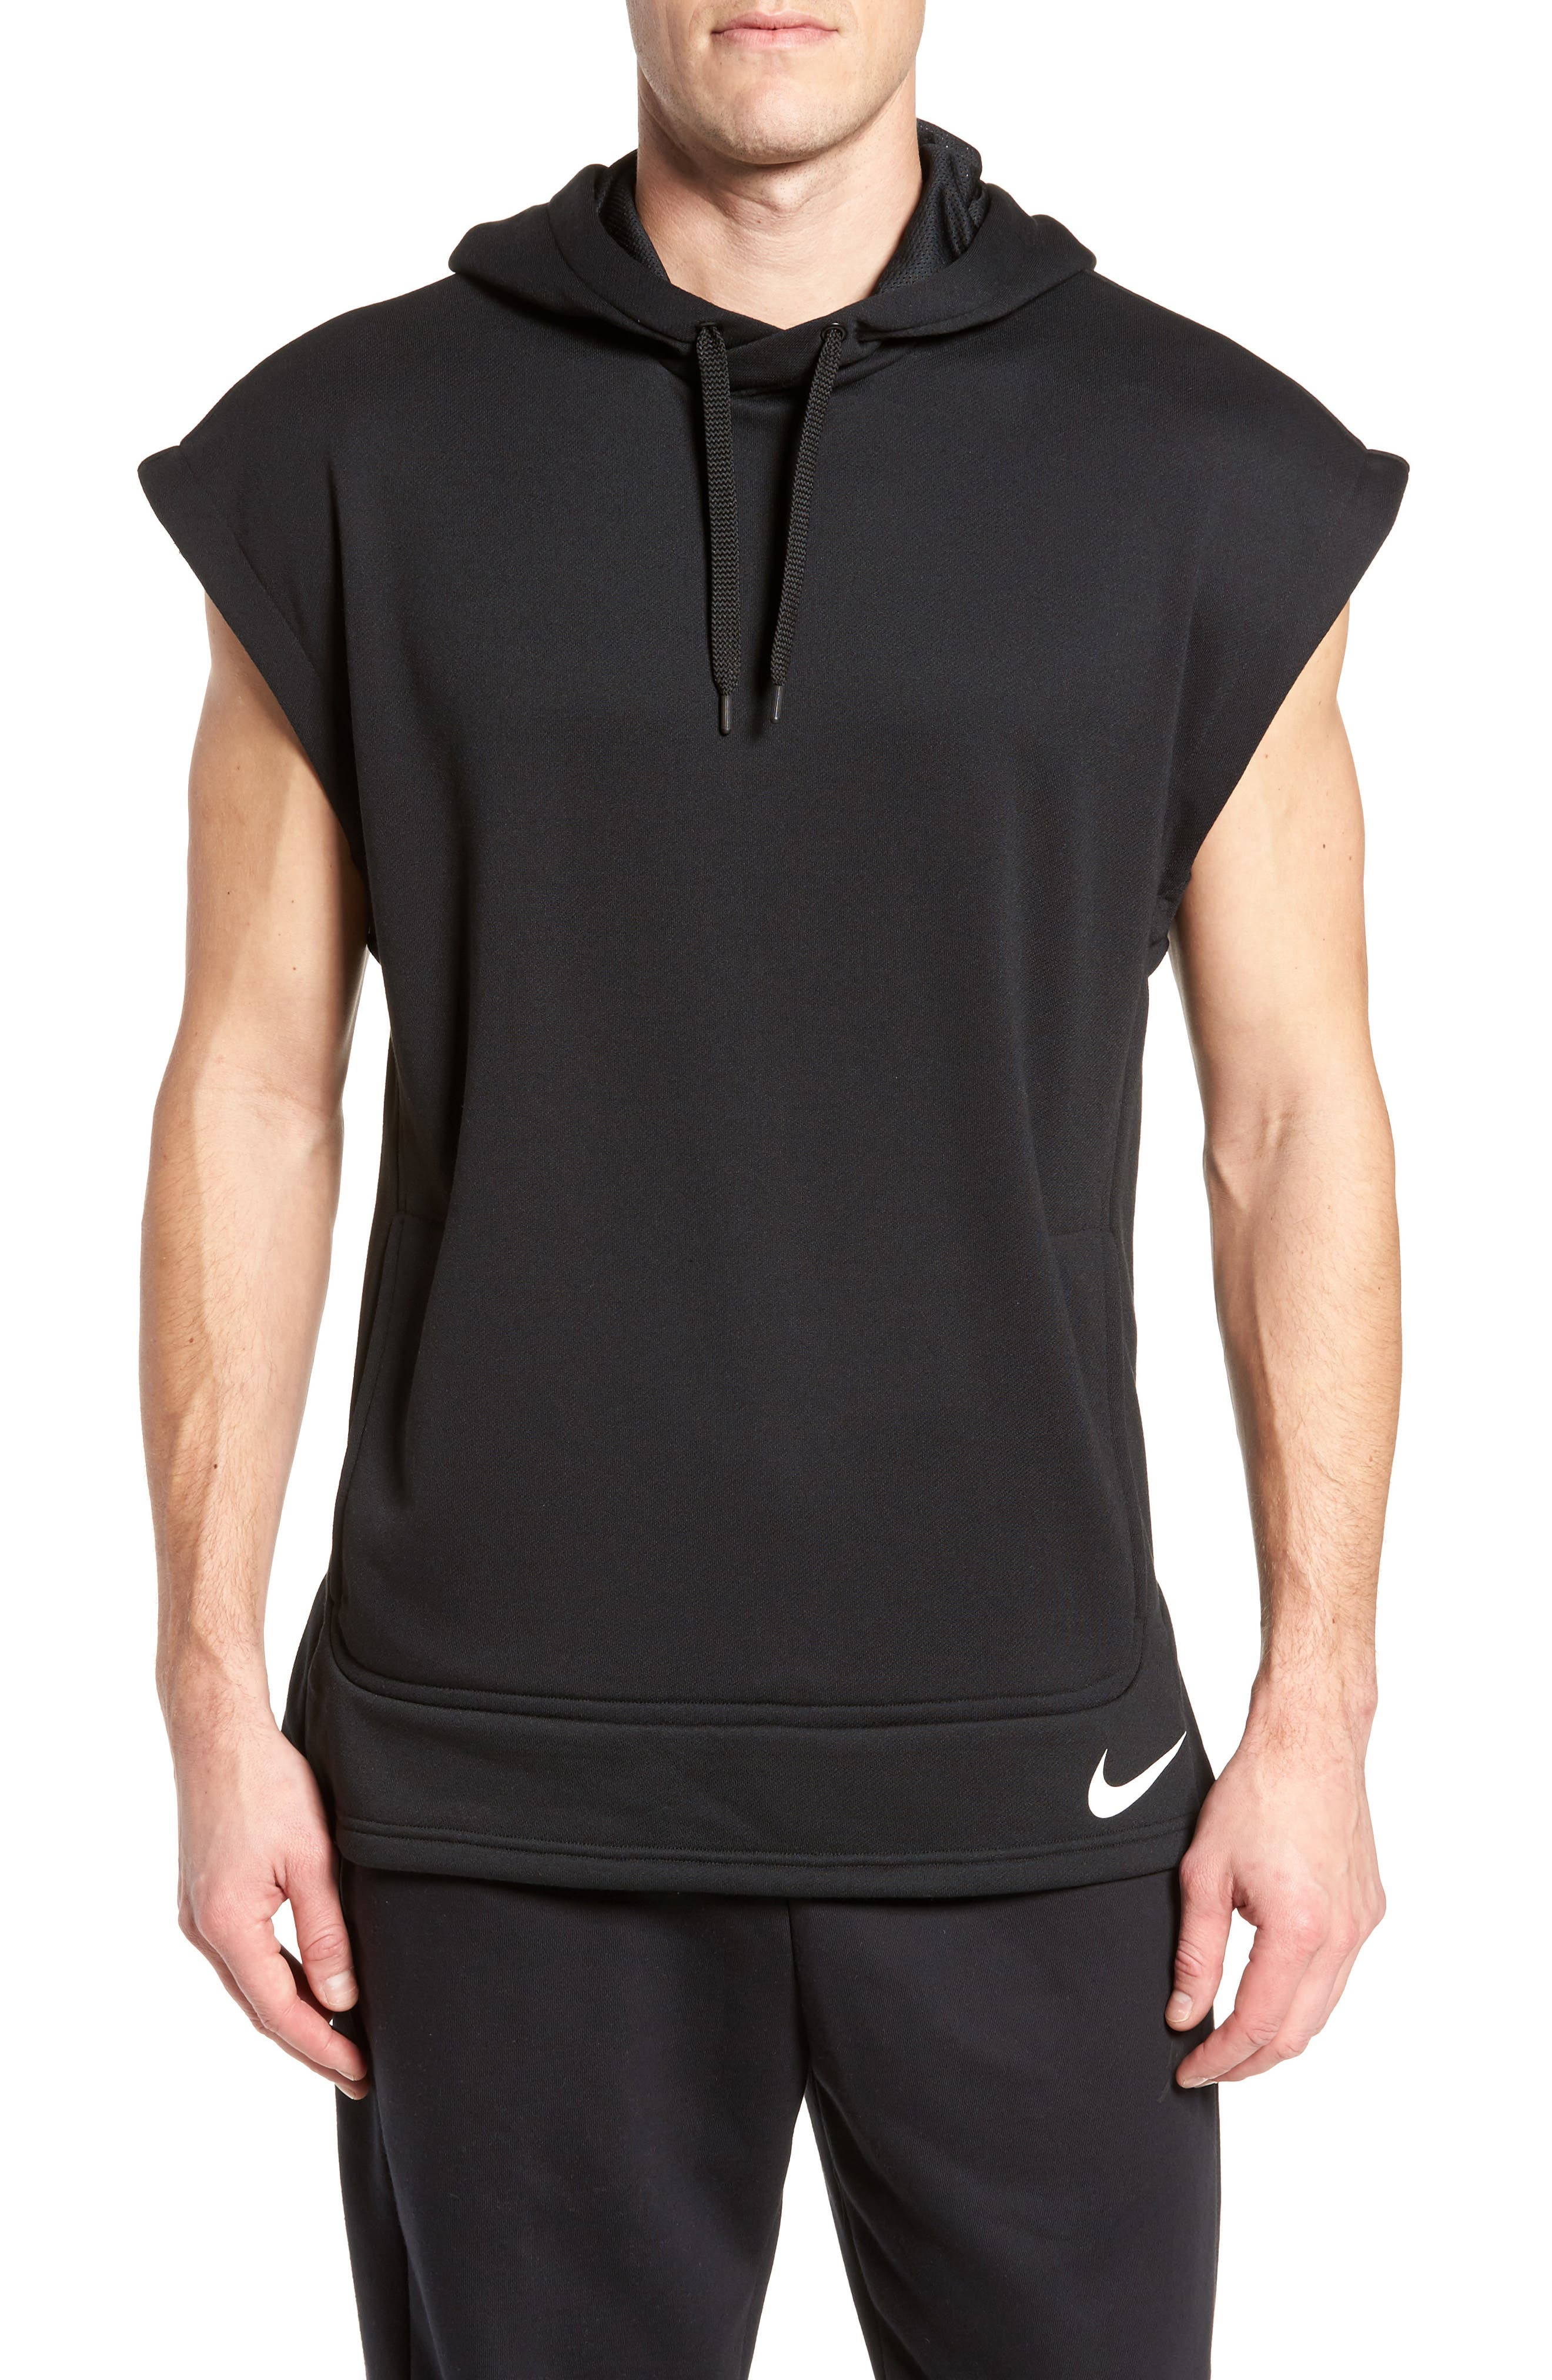 Training Dry Top PX Sleeveless Hoodie,                             Main thumbnail 1, color,                             010